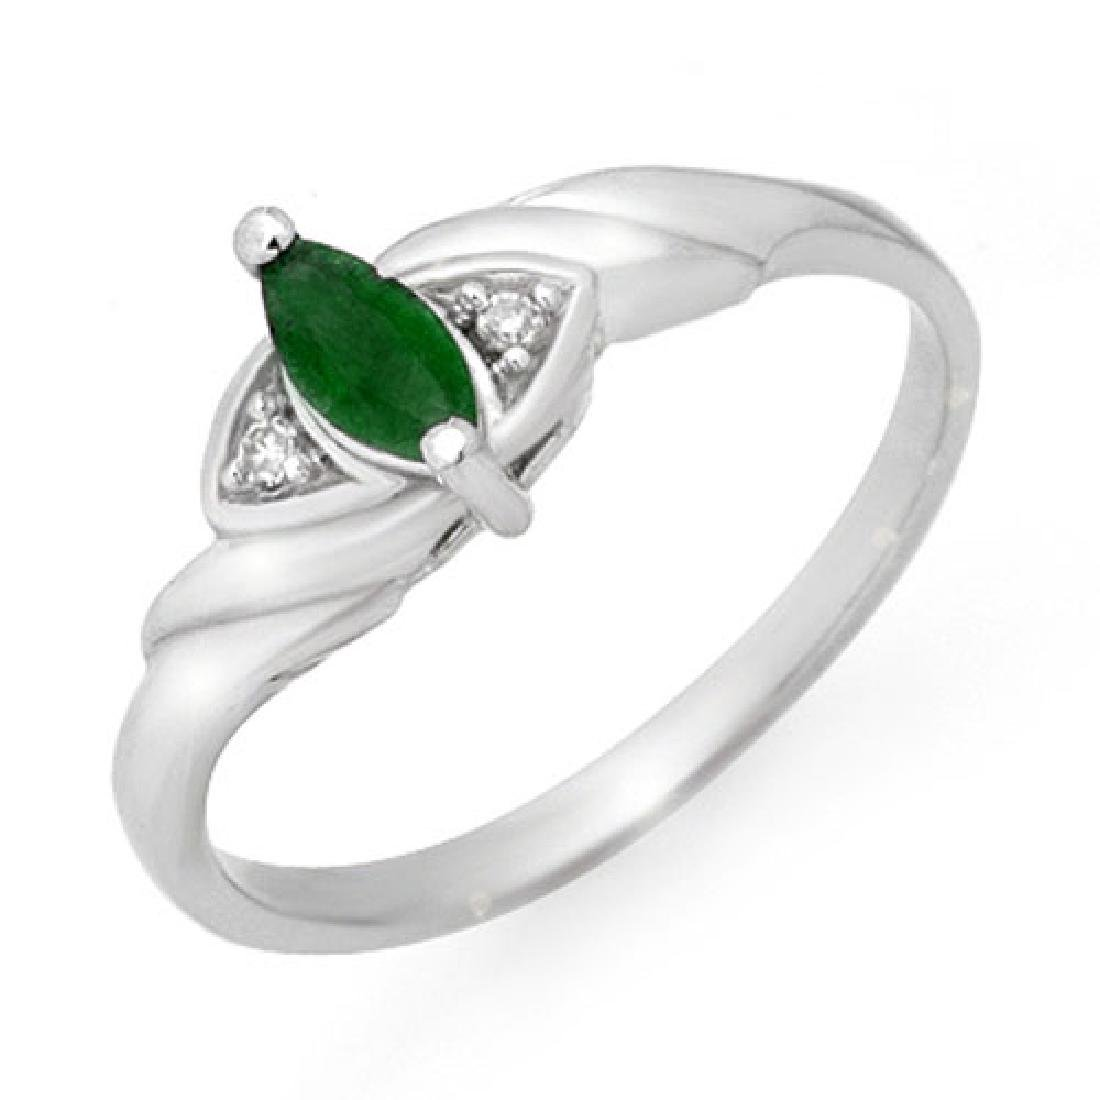 0.26 CTW Emerald & Diamond Ring 18K White Gold